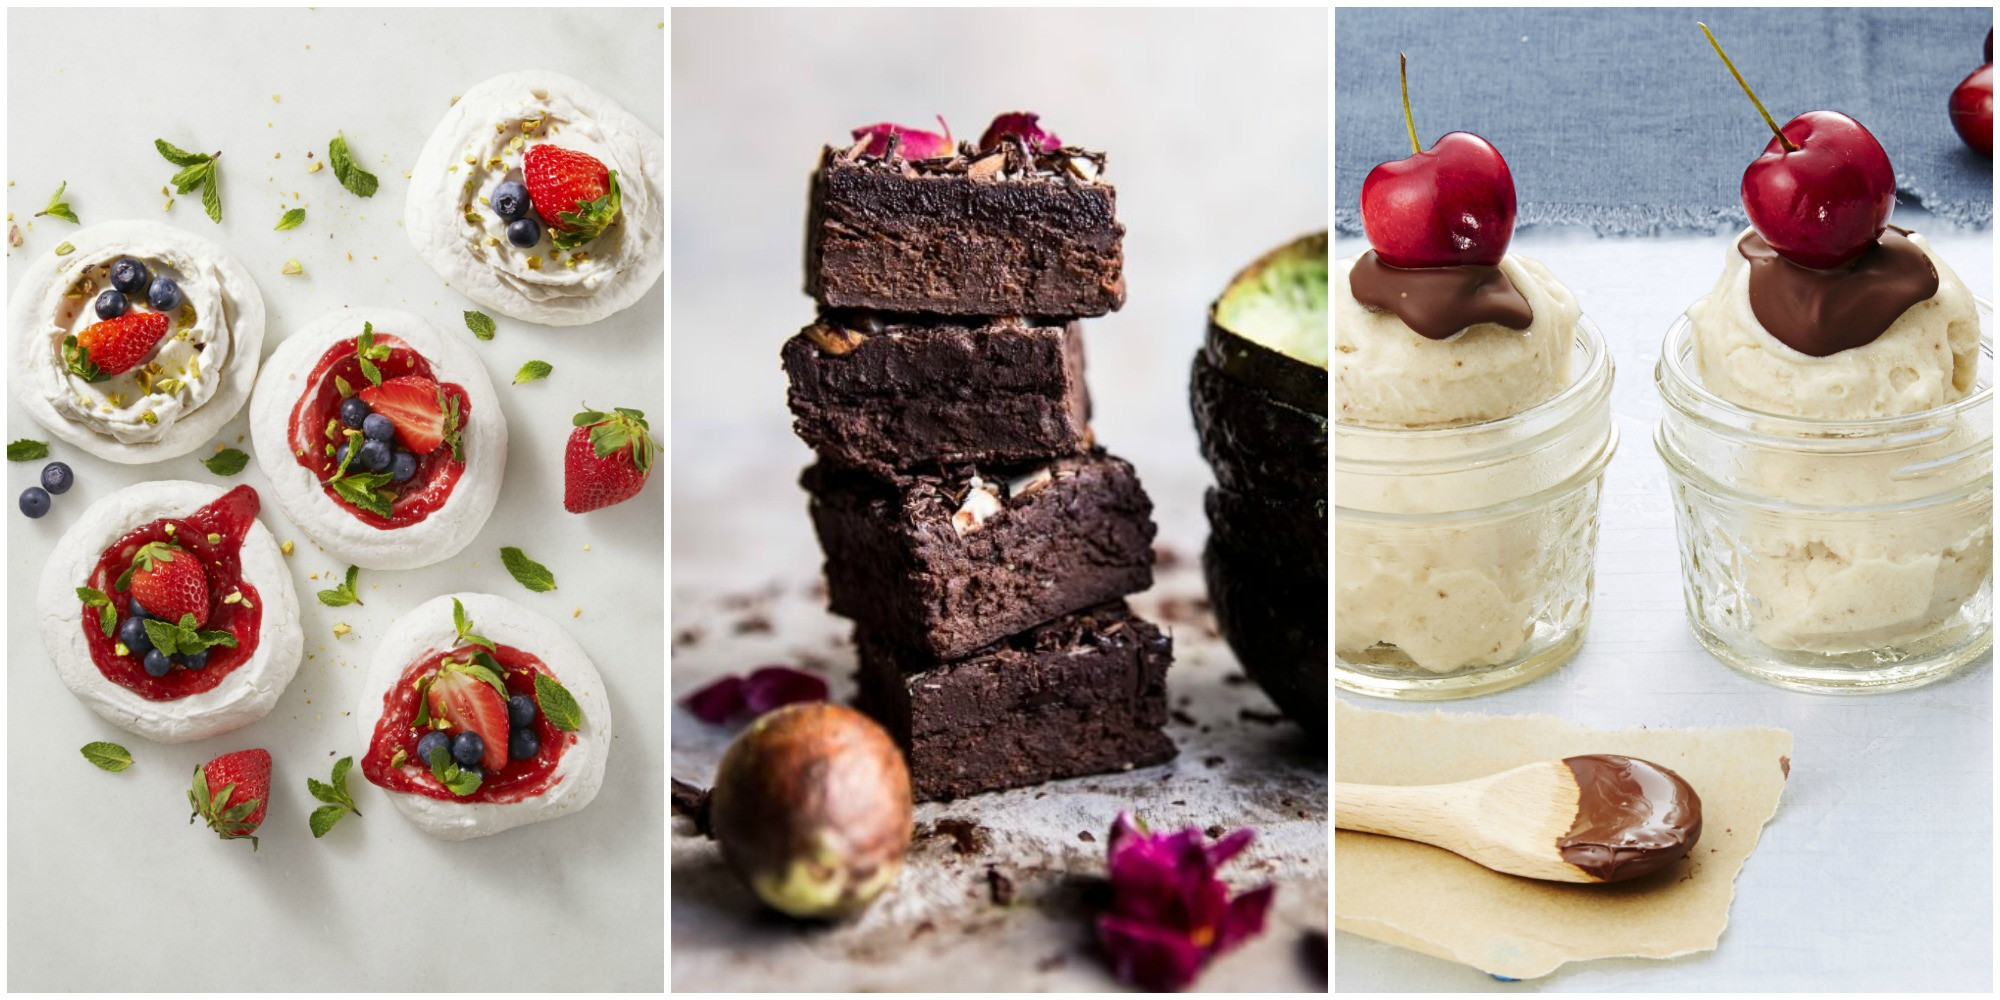 Quick Healthy Desserts  15 Best Healthy Dessert Recipes Easy Ideas for Low